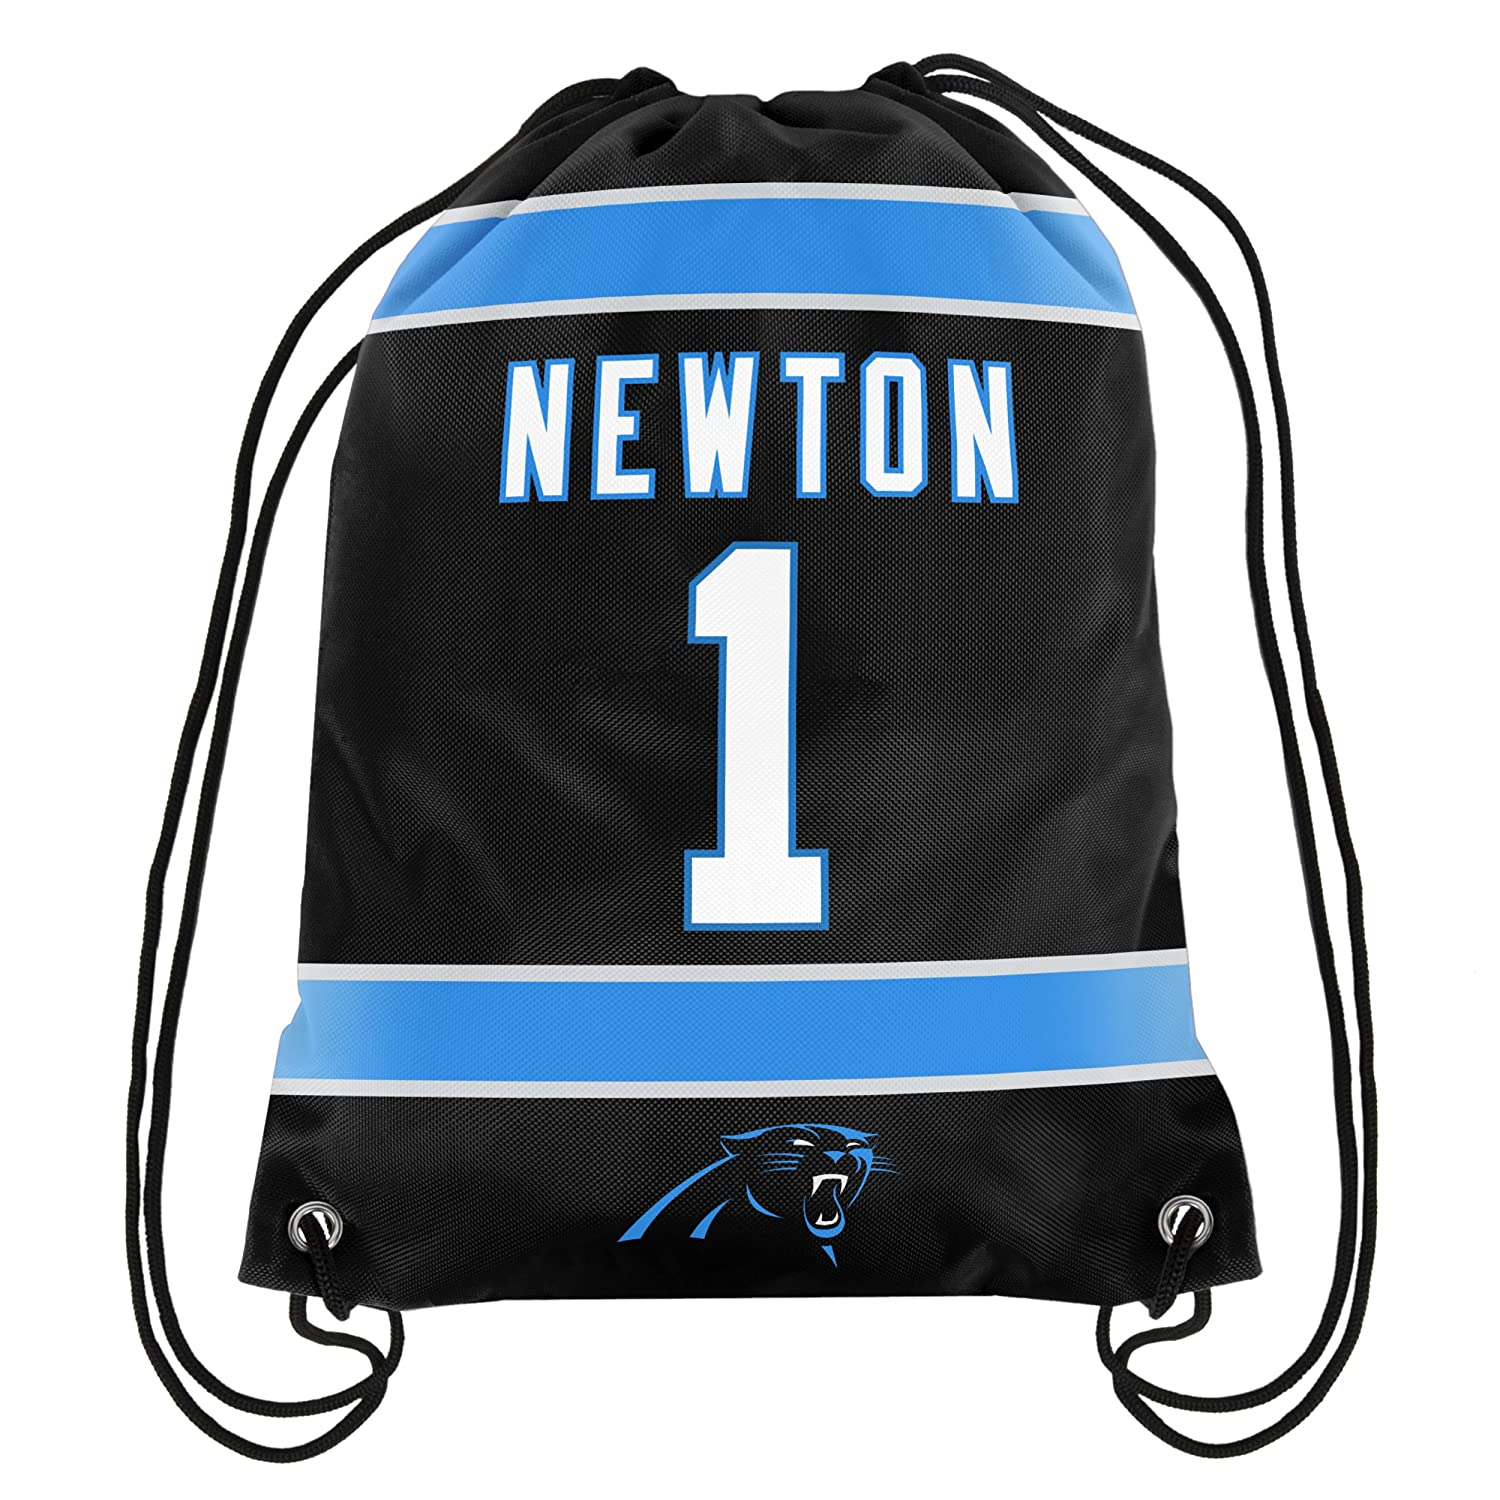 ... Amazon.com Cam Newton 1 Carolina Panthers Jersey Back PackSack  Drawstring gym Bag NFL- ... 2030bef5c